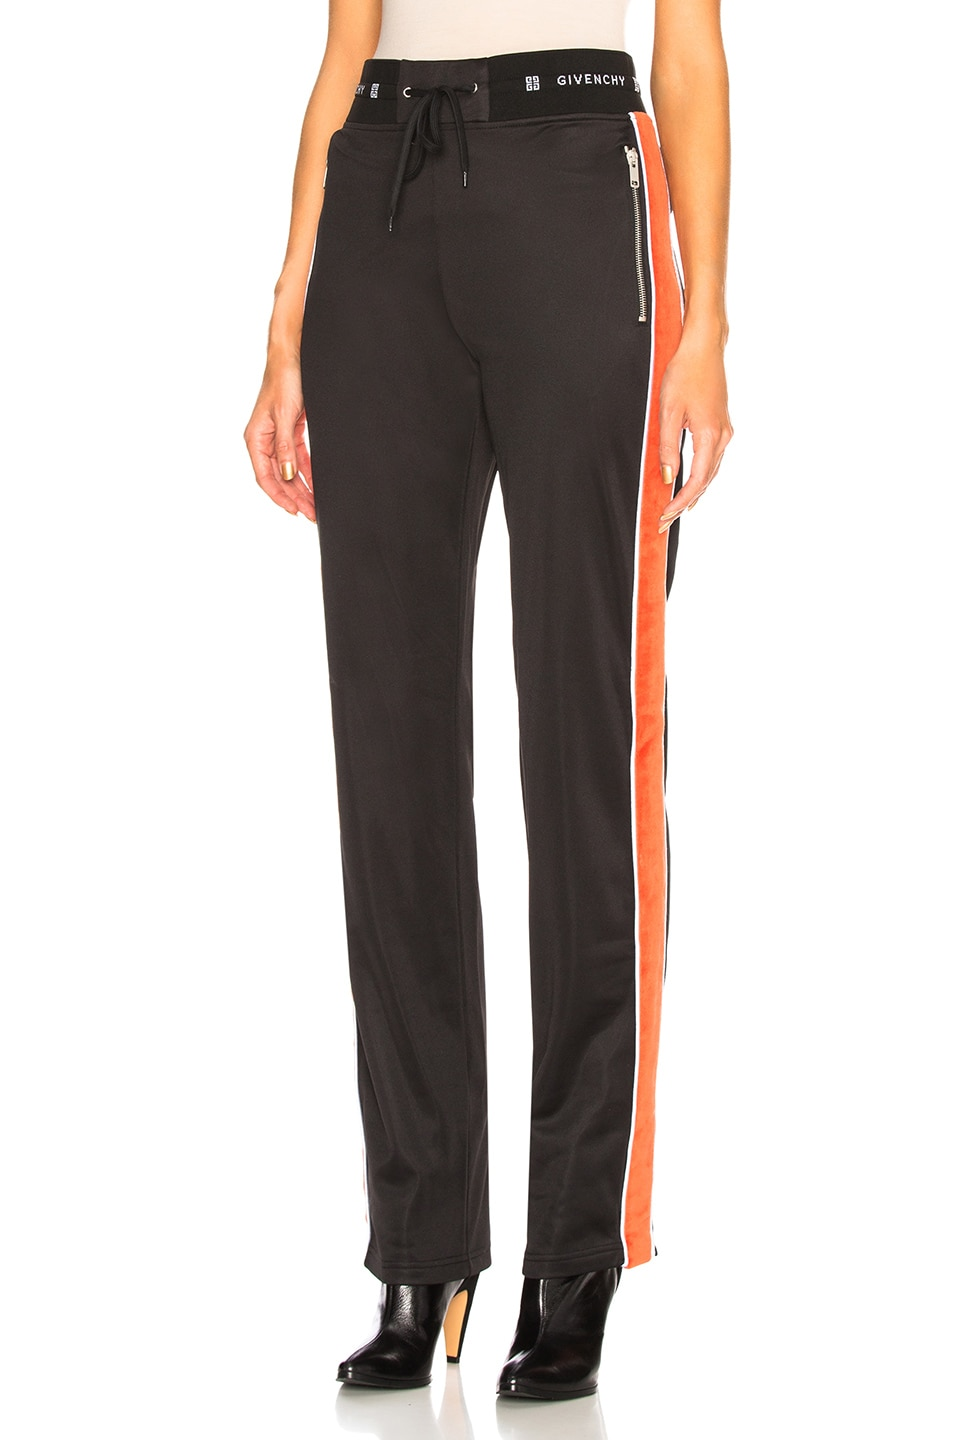 Image 1 of Givenchy Technical Neoprene Jersey Joggers in Black & Orange